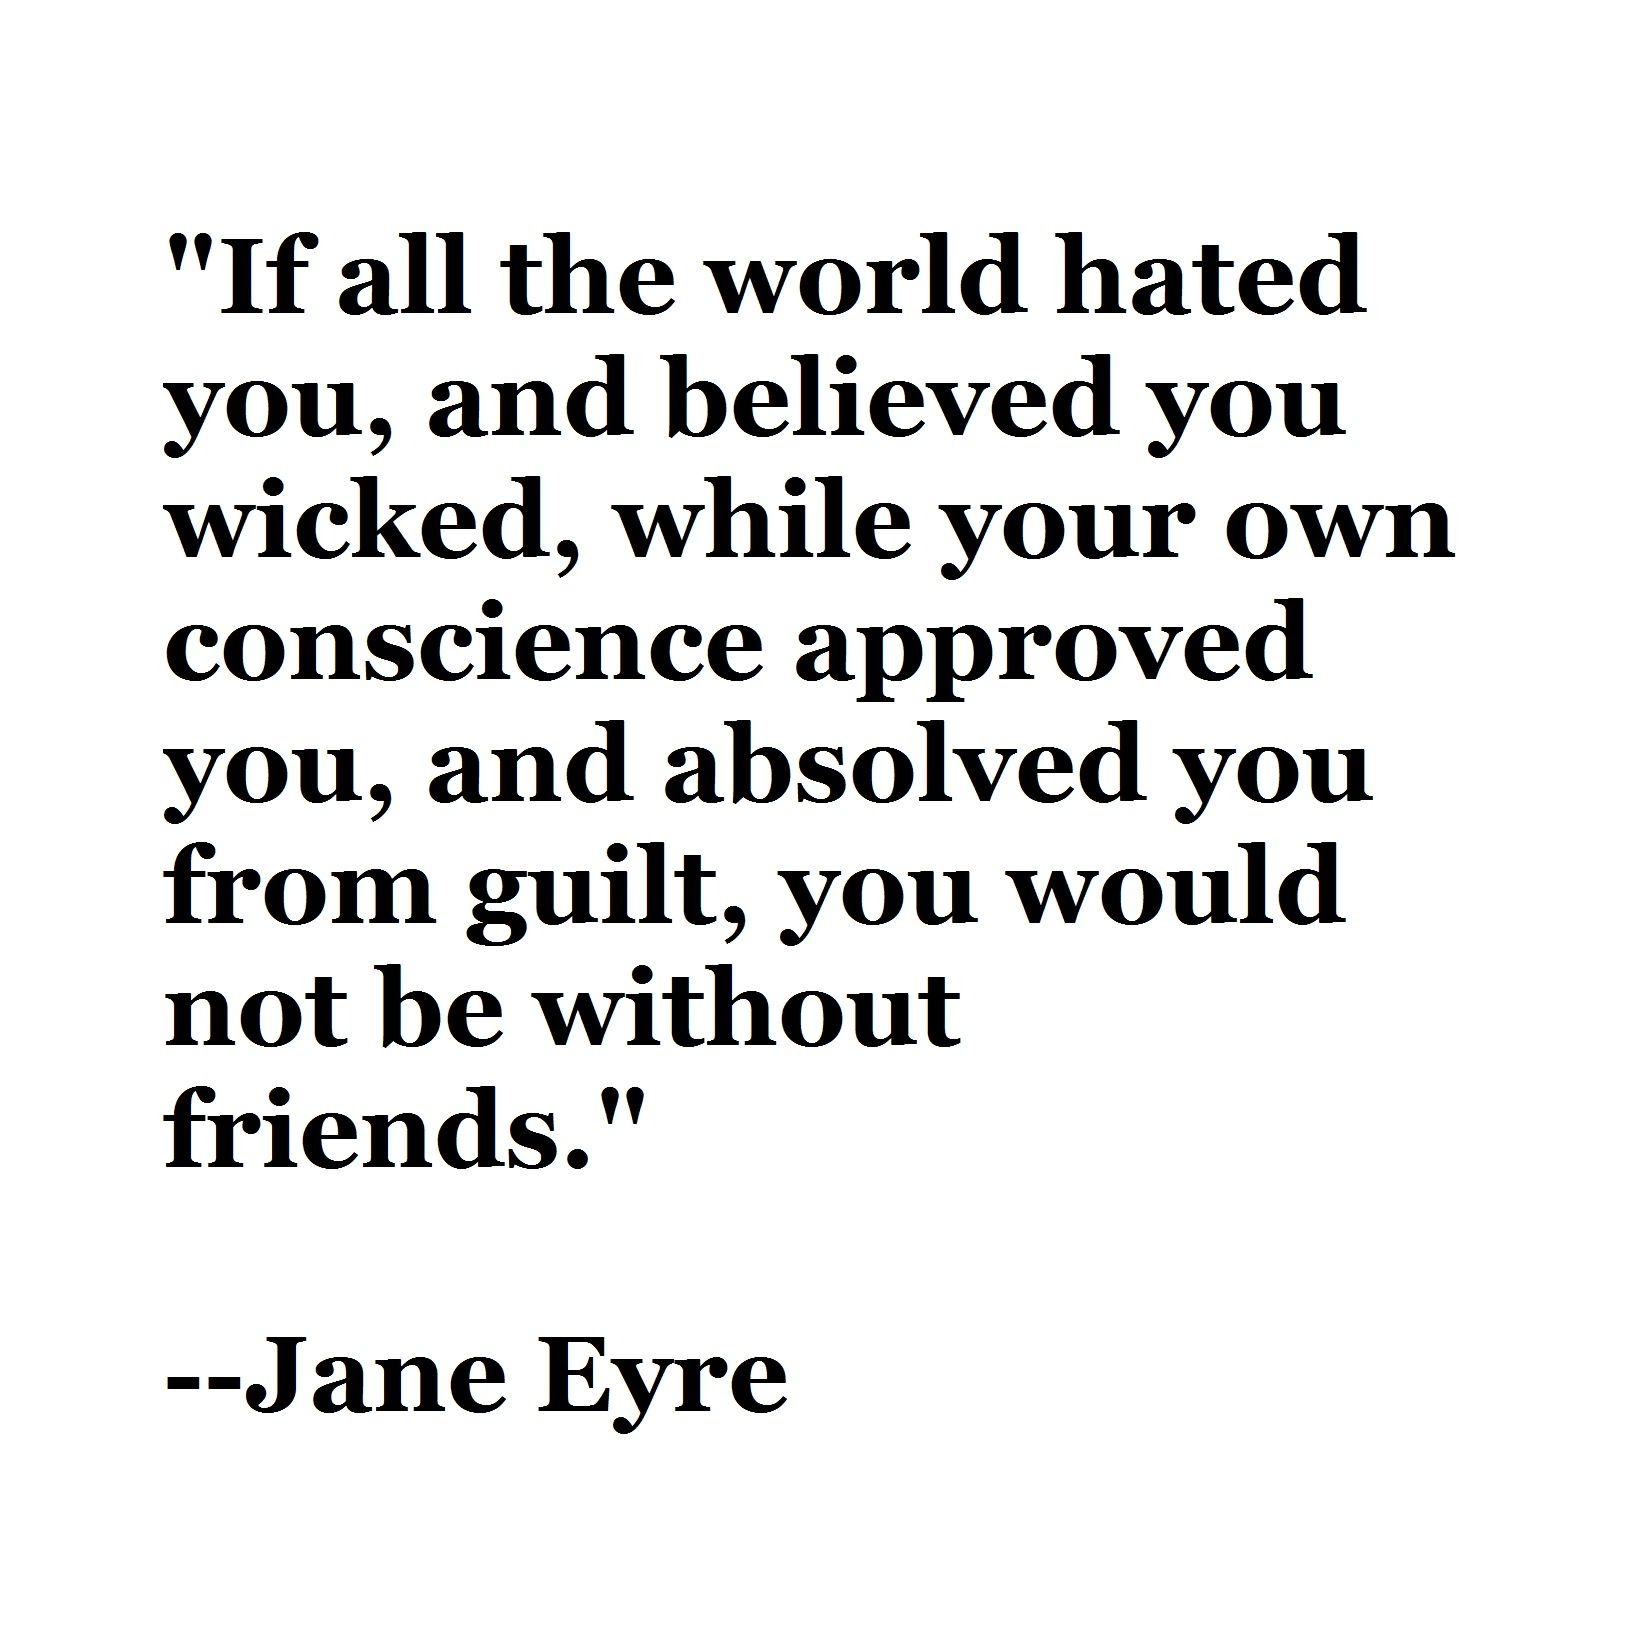 essays on jane eyre Free essay: reflection on jane eyre that strange little figure there gazing at me, with a white face and arms specking the gloom, and glittering eyes.